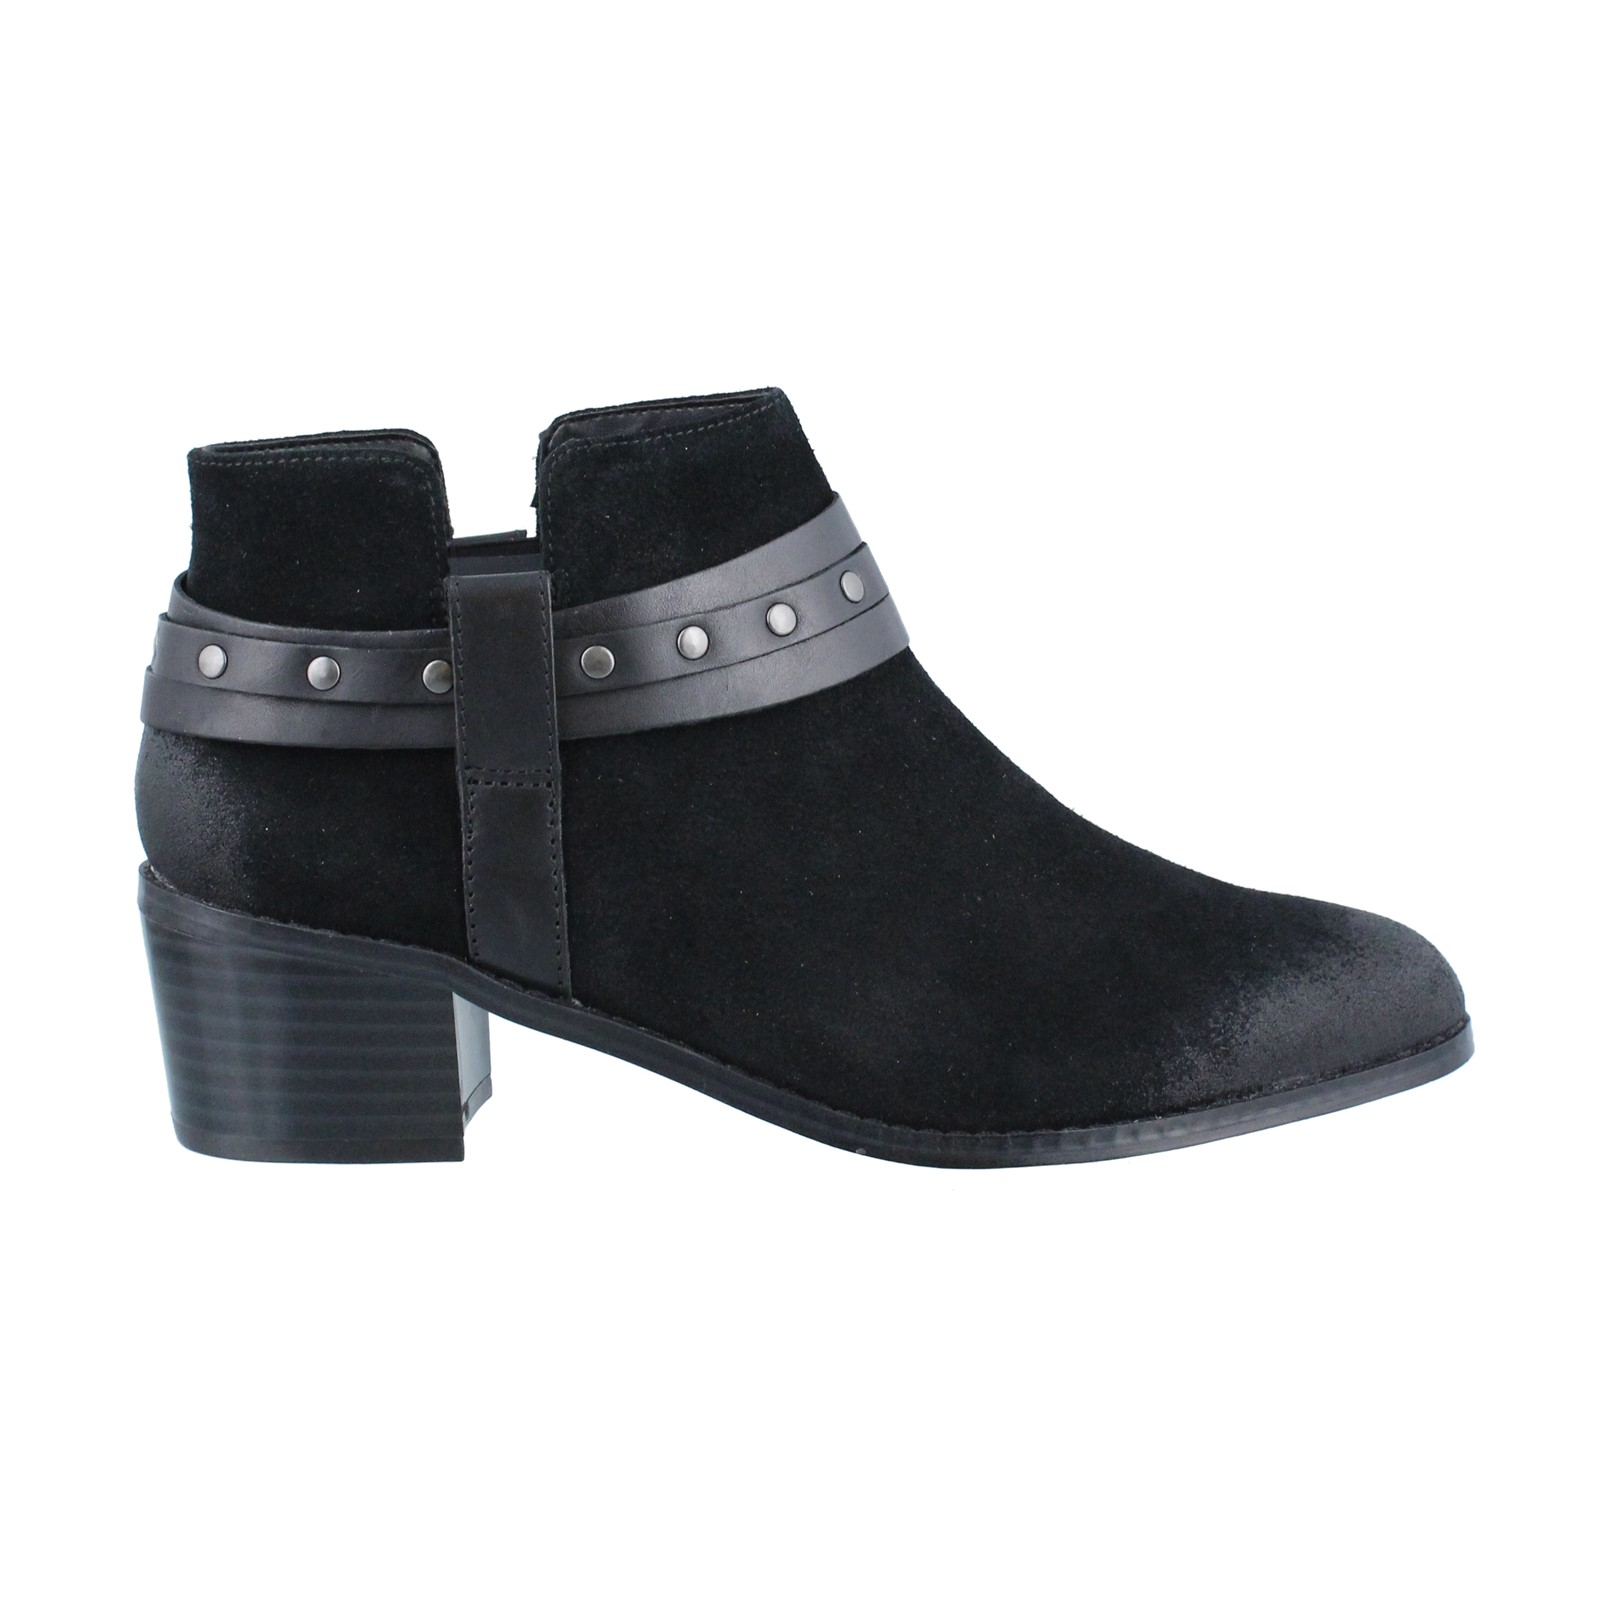 Women's Clarks, Breccan Shine Ankle Boot